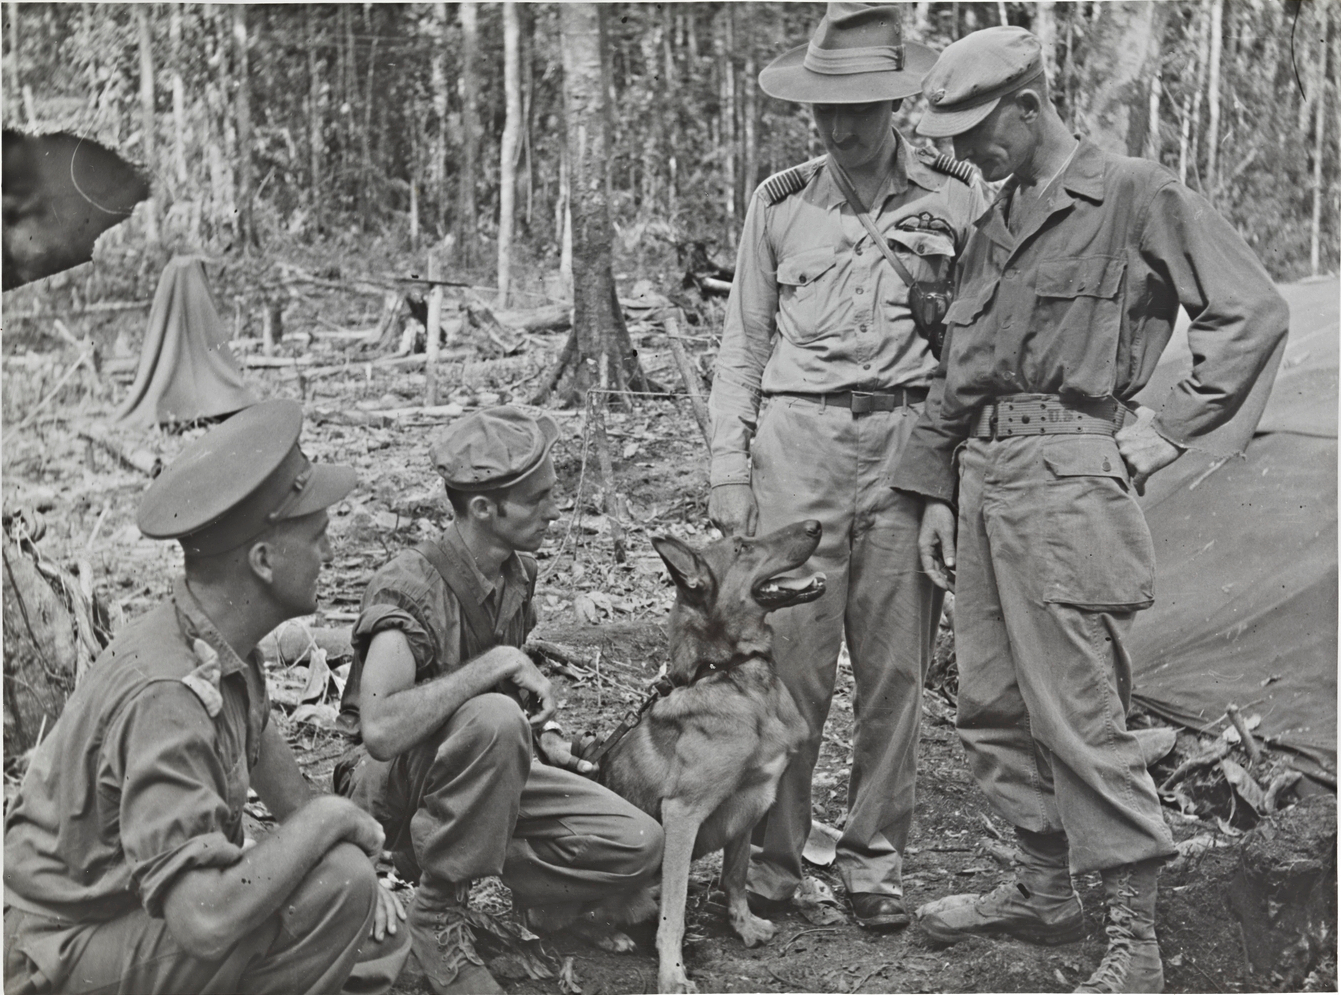 Military operations - the islands, New Guinea area - Goodenough Island